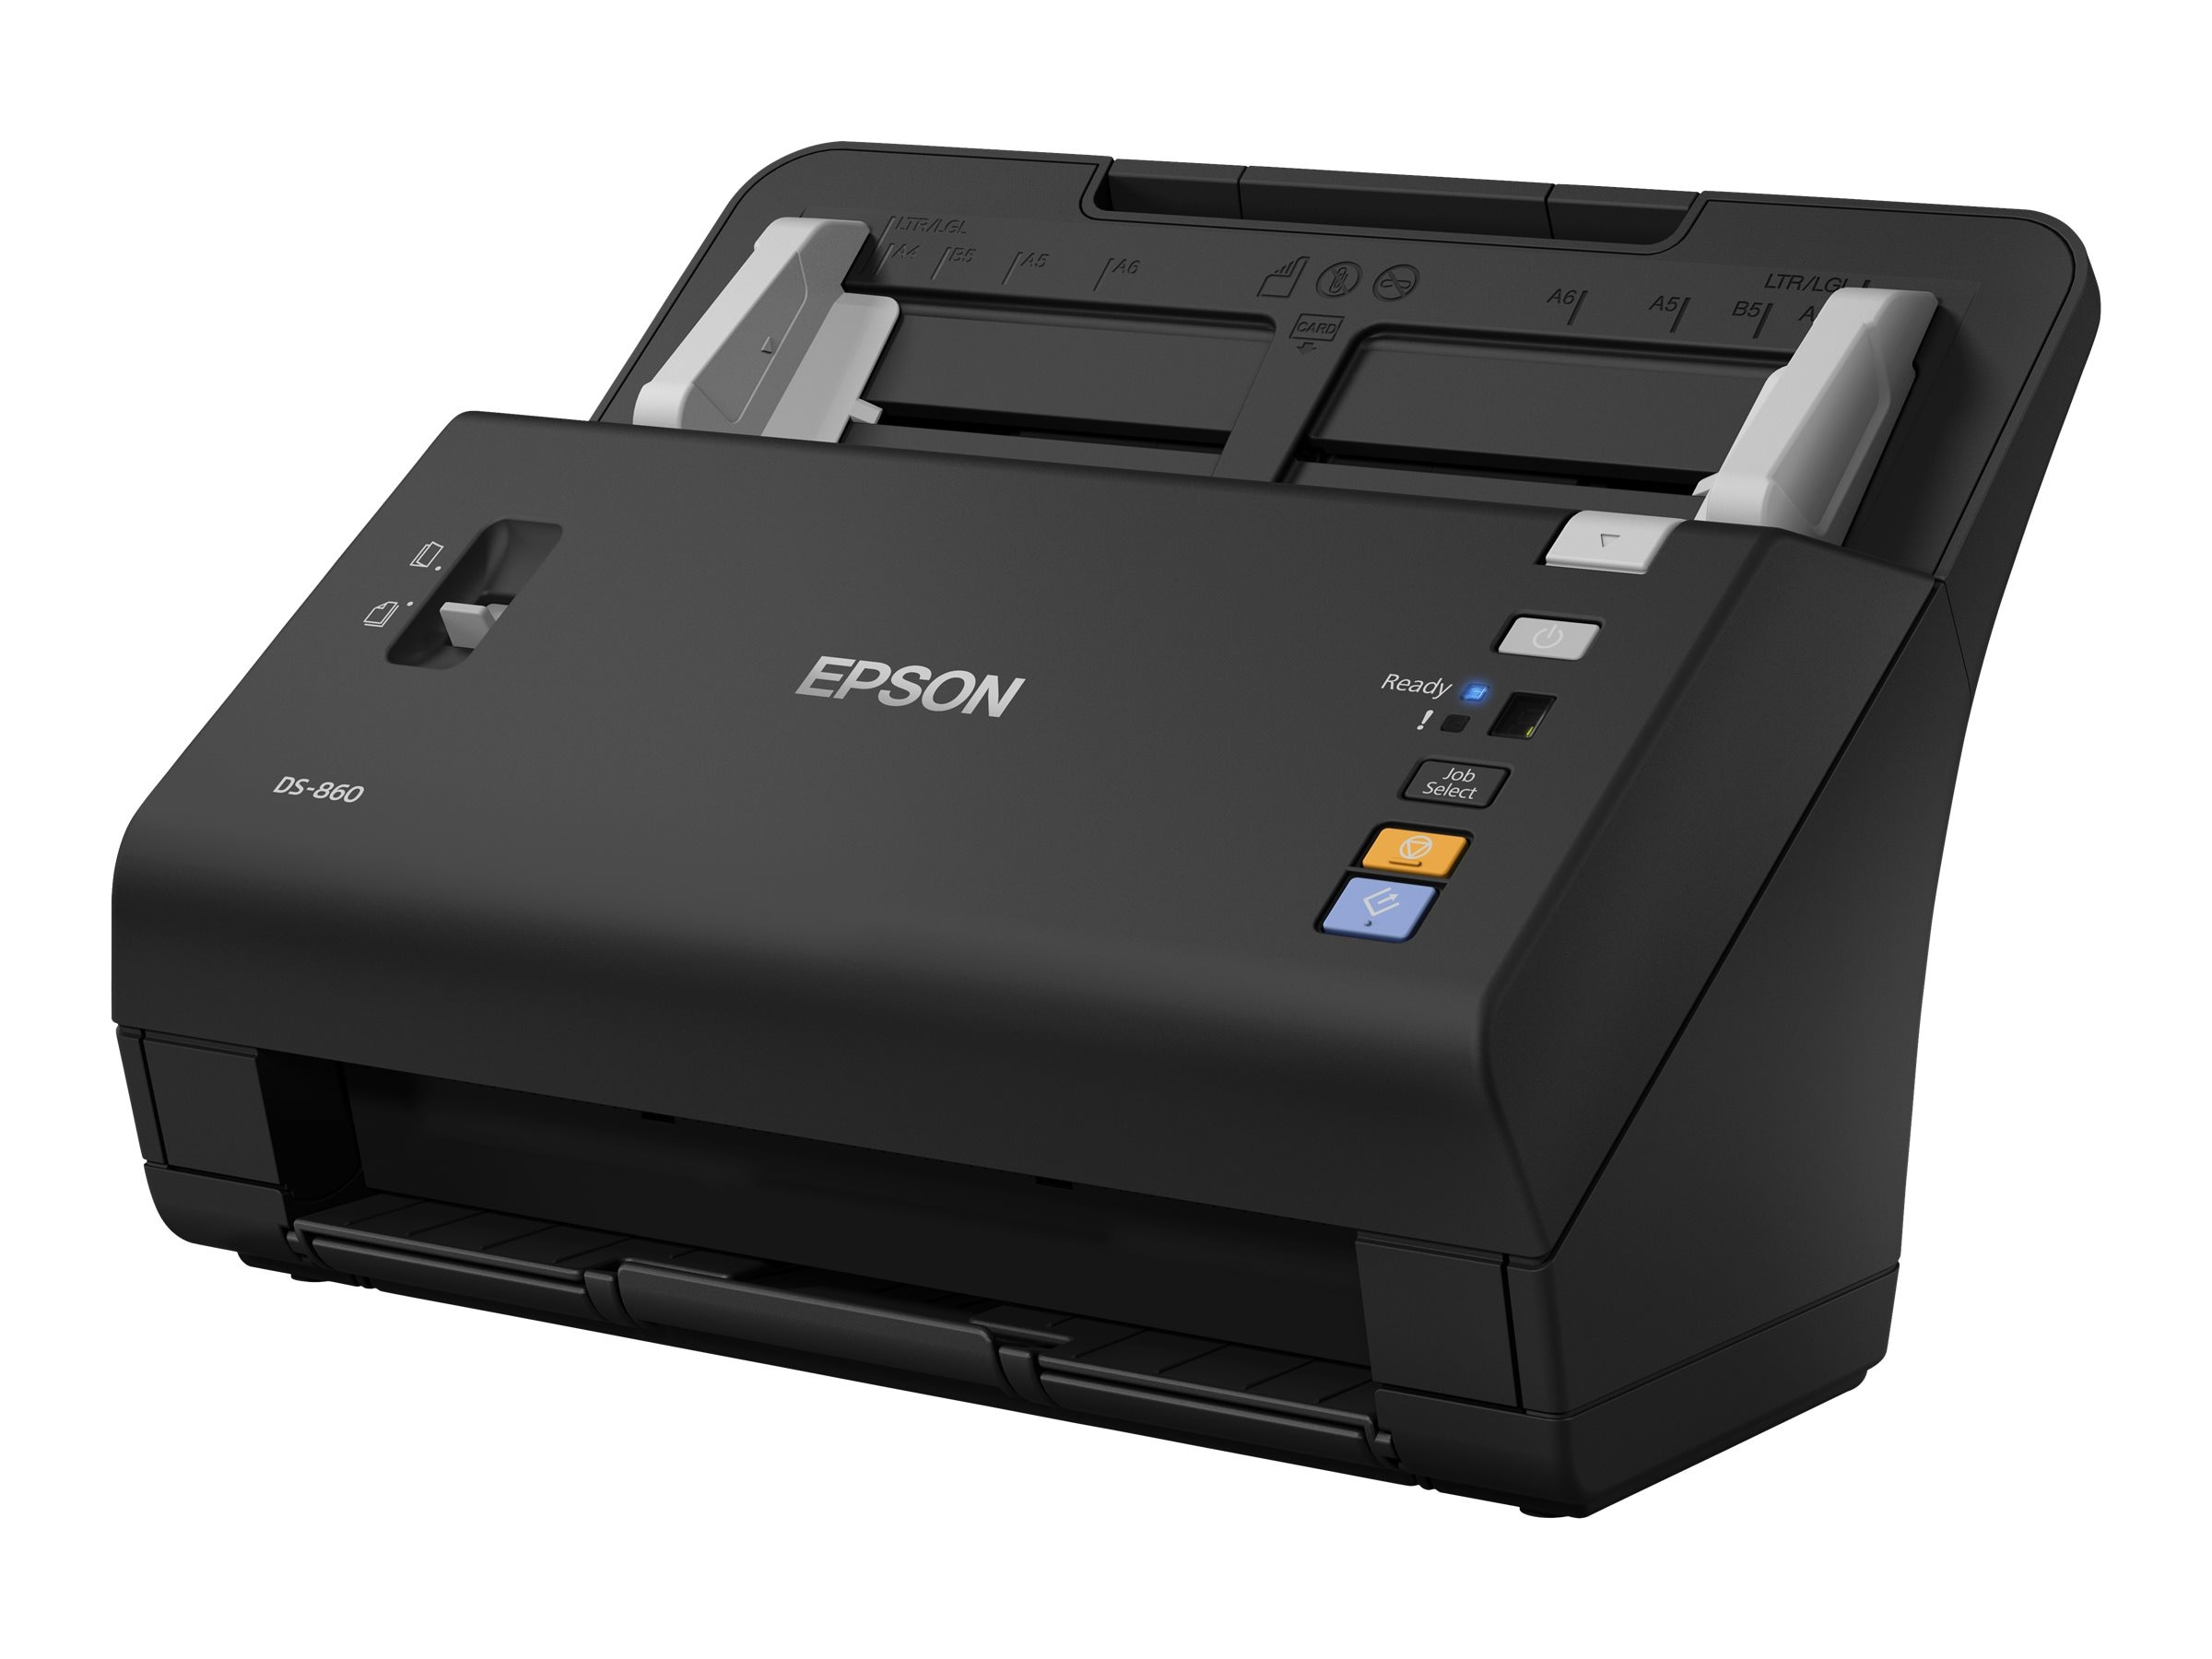 Epson WorkForce DS-860 65ppm 80-page ADF Document Scanner - $1099 less instant rebate of $300.00, B11B222201